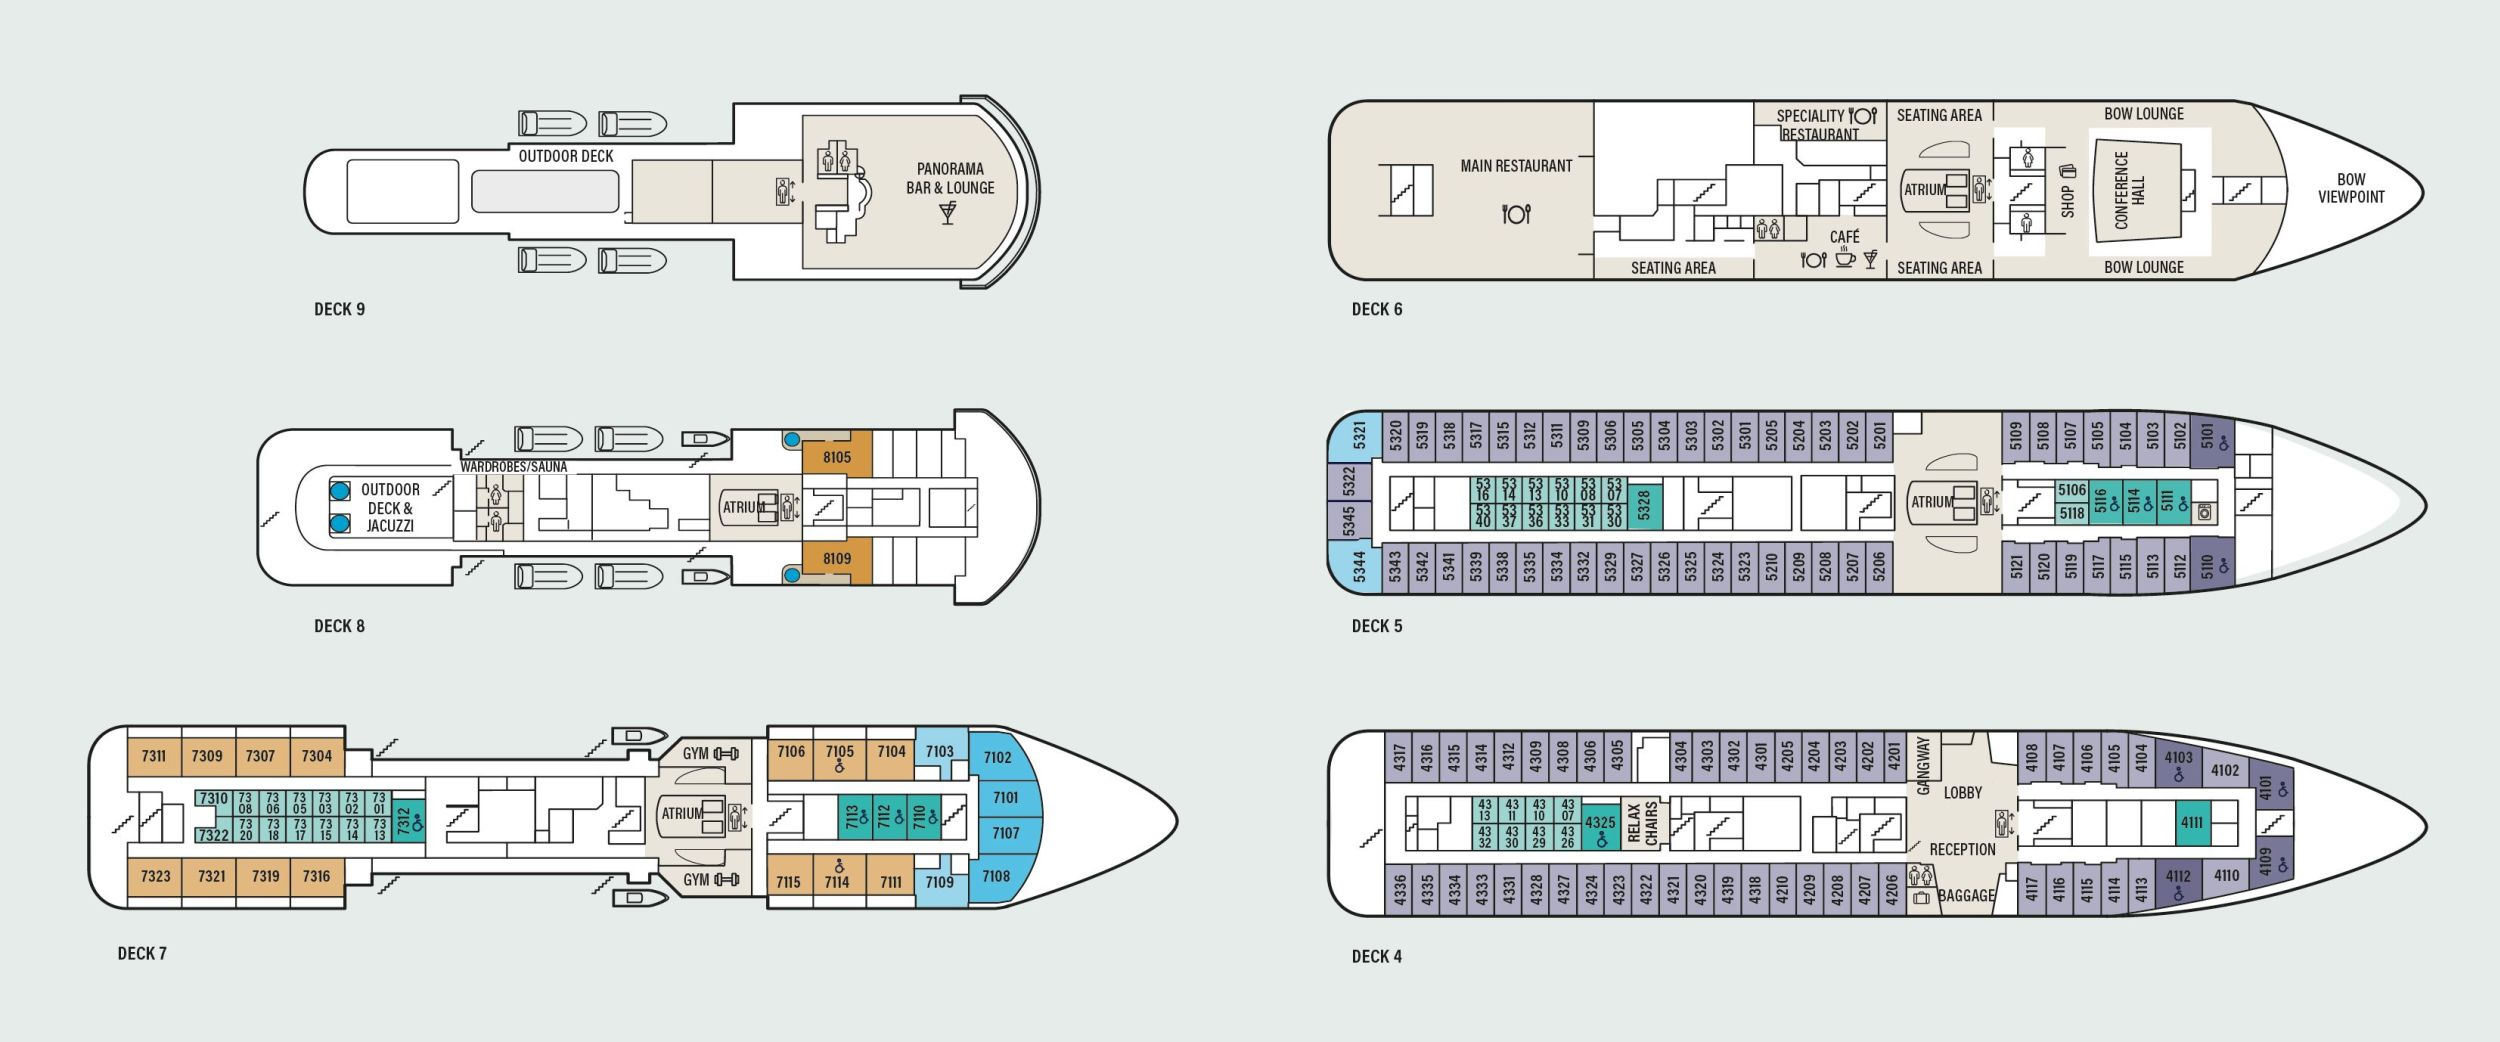 Deck overview of the Havila ships.